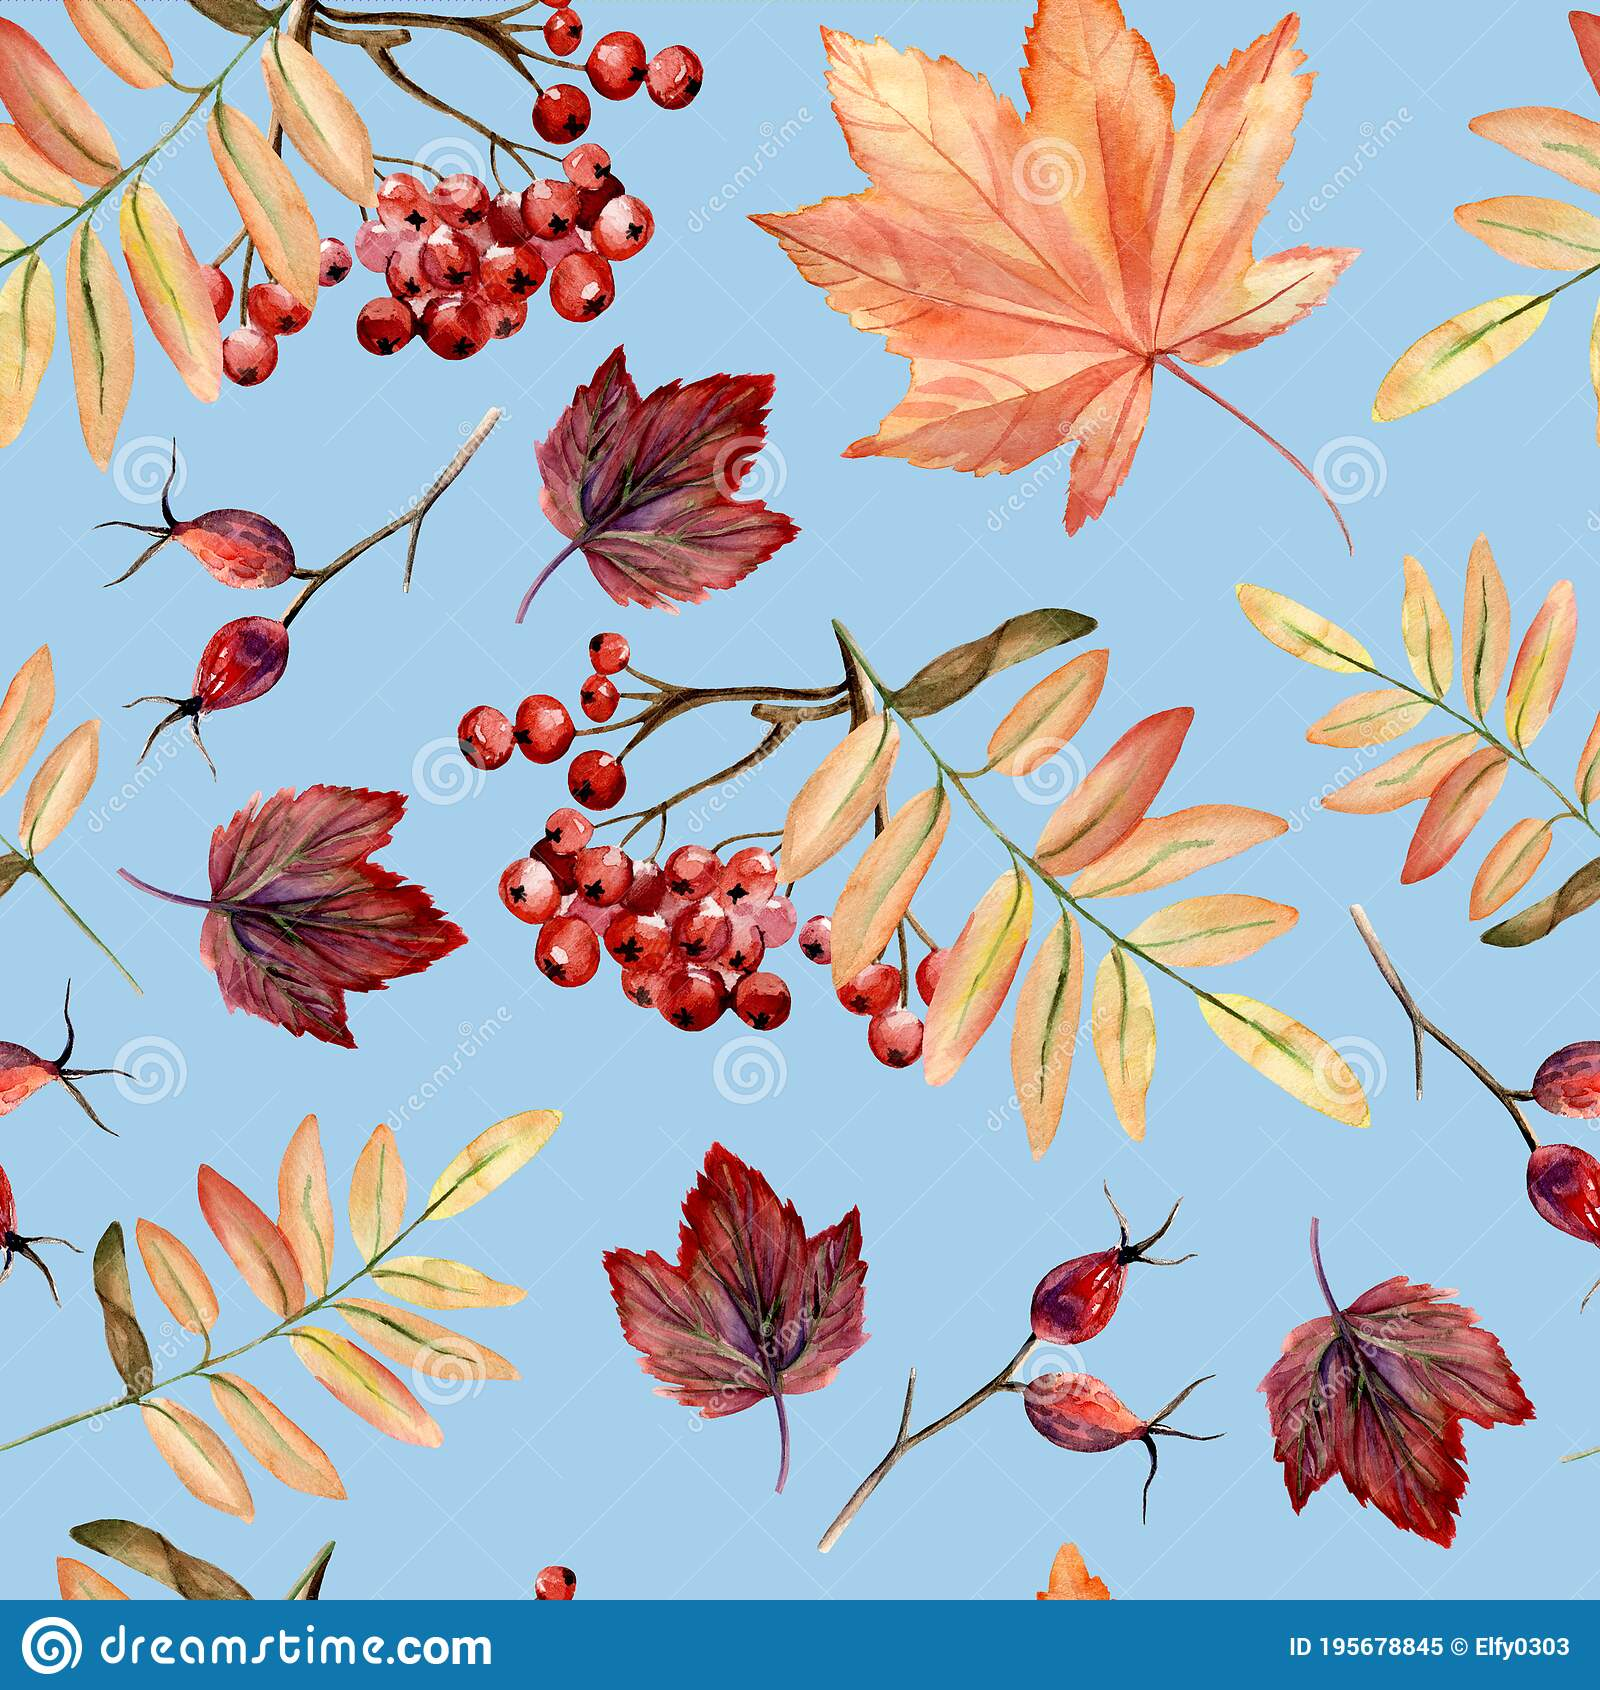 Watercolor Hand Painted Seamless Pattern With Autumn Leaves Rowan Branches On Blue Background Perfect For Fall Or Thanksgiving Stock Illustration Illustration Of Drawn Autumn 195678845